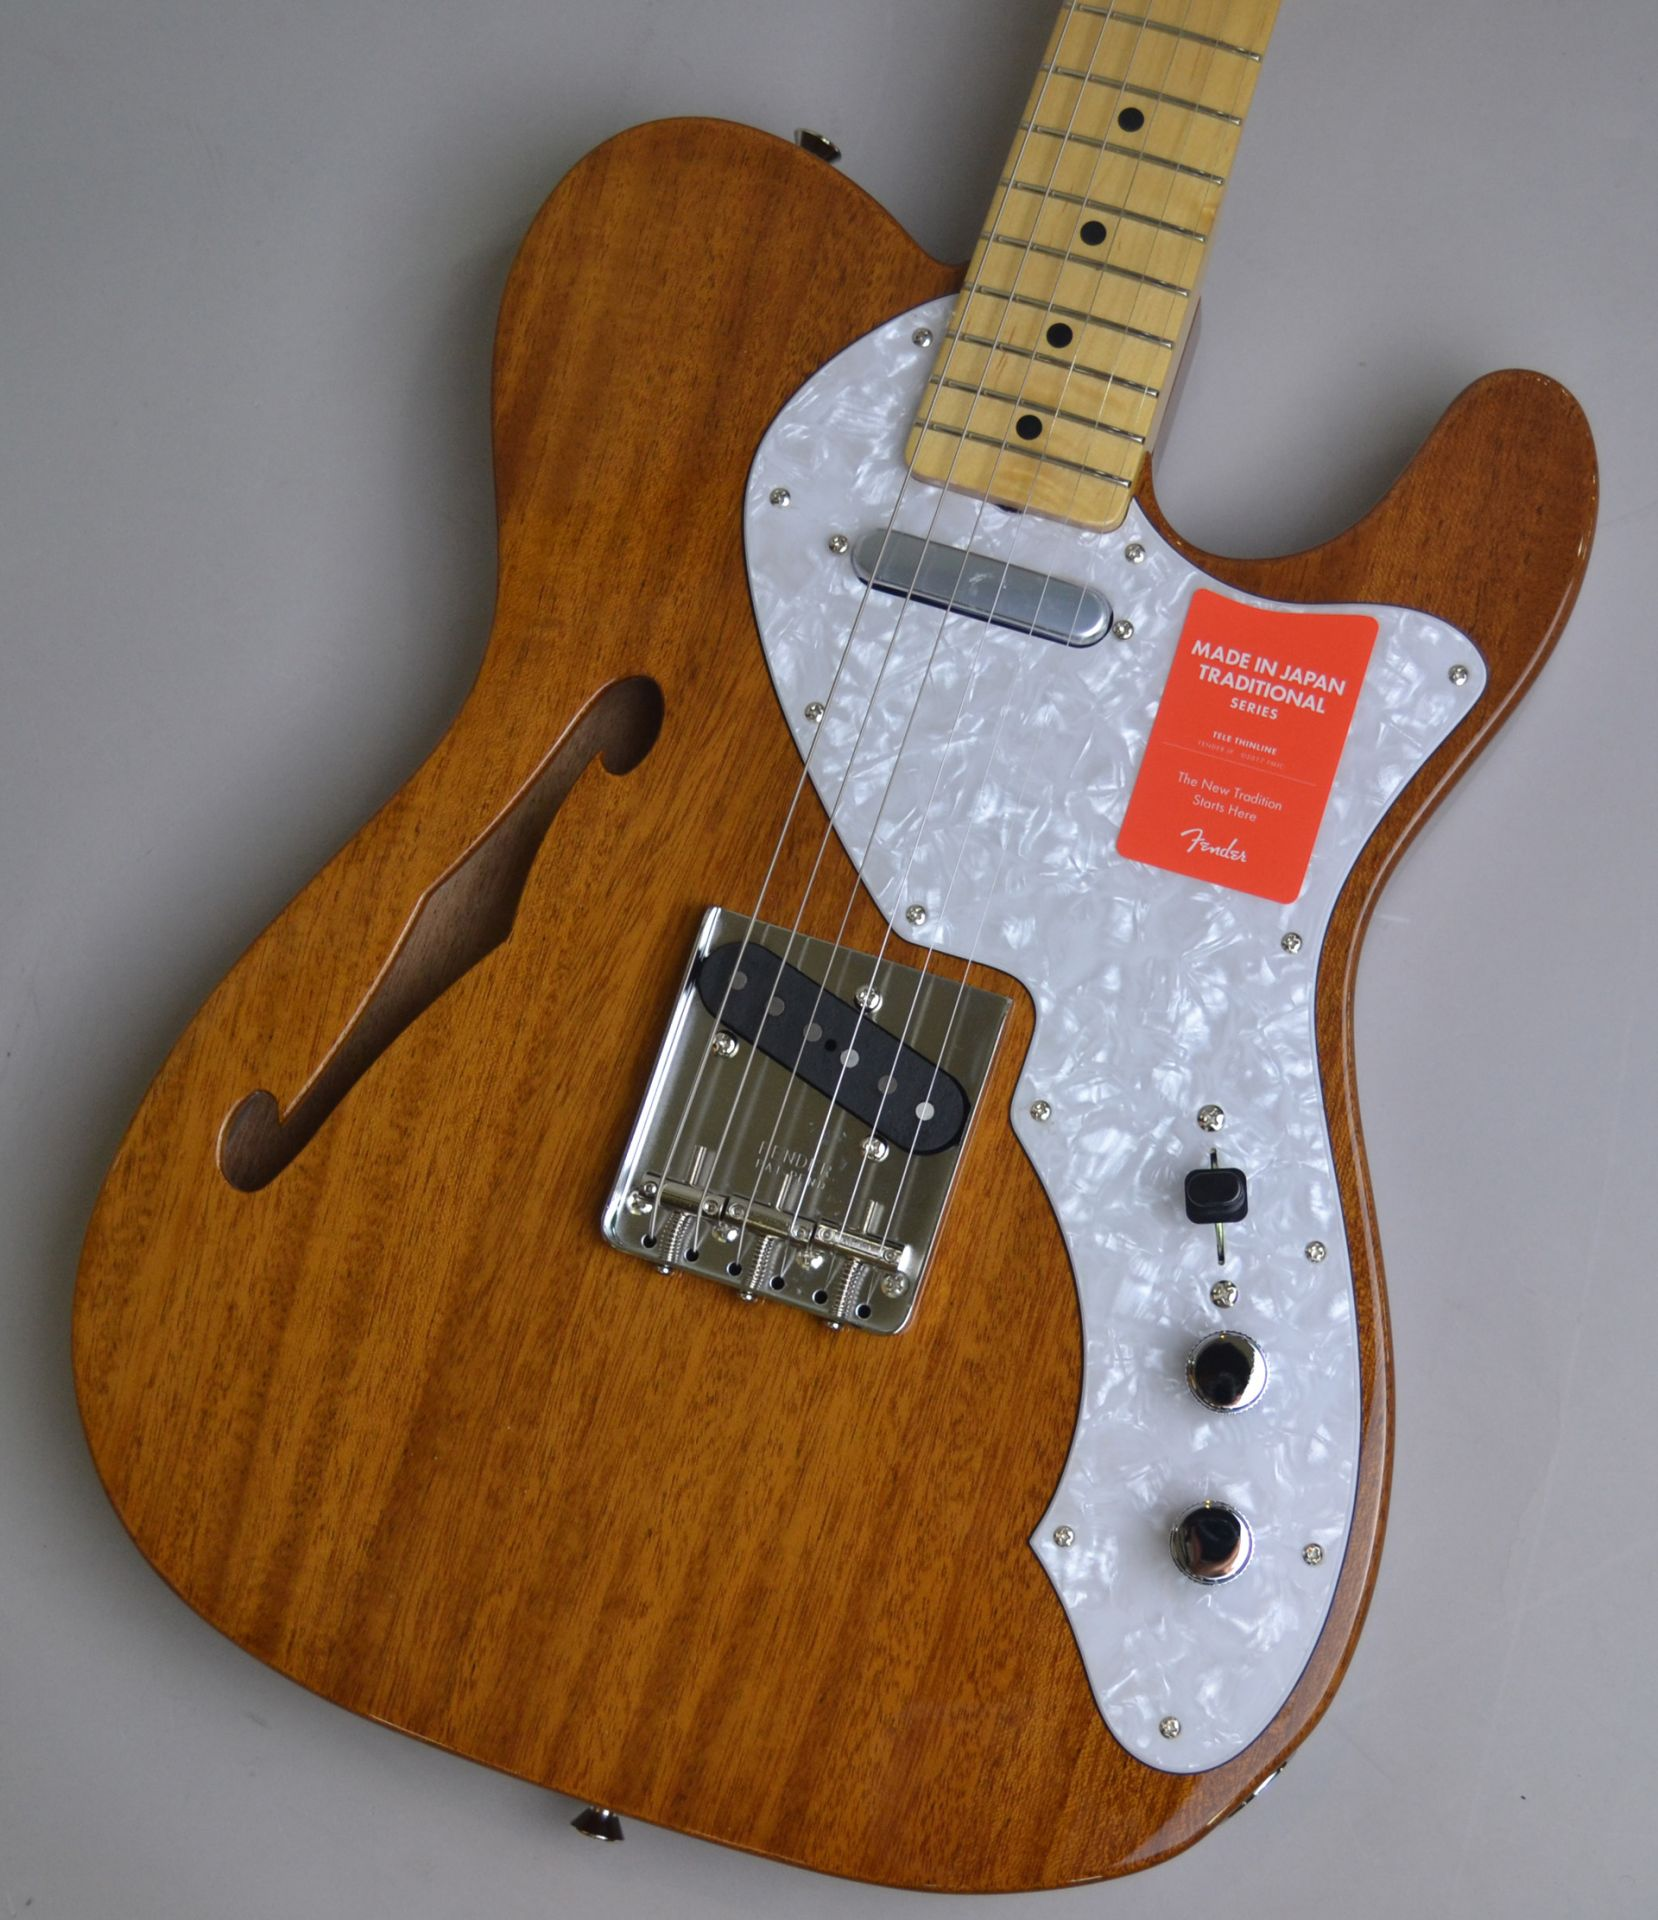 Made in Japan Traditional 69 Telecaster Thinline NAT シンラインのボディトップ-アップ画像